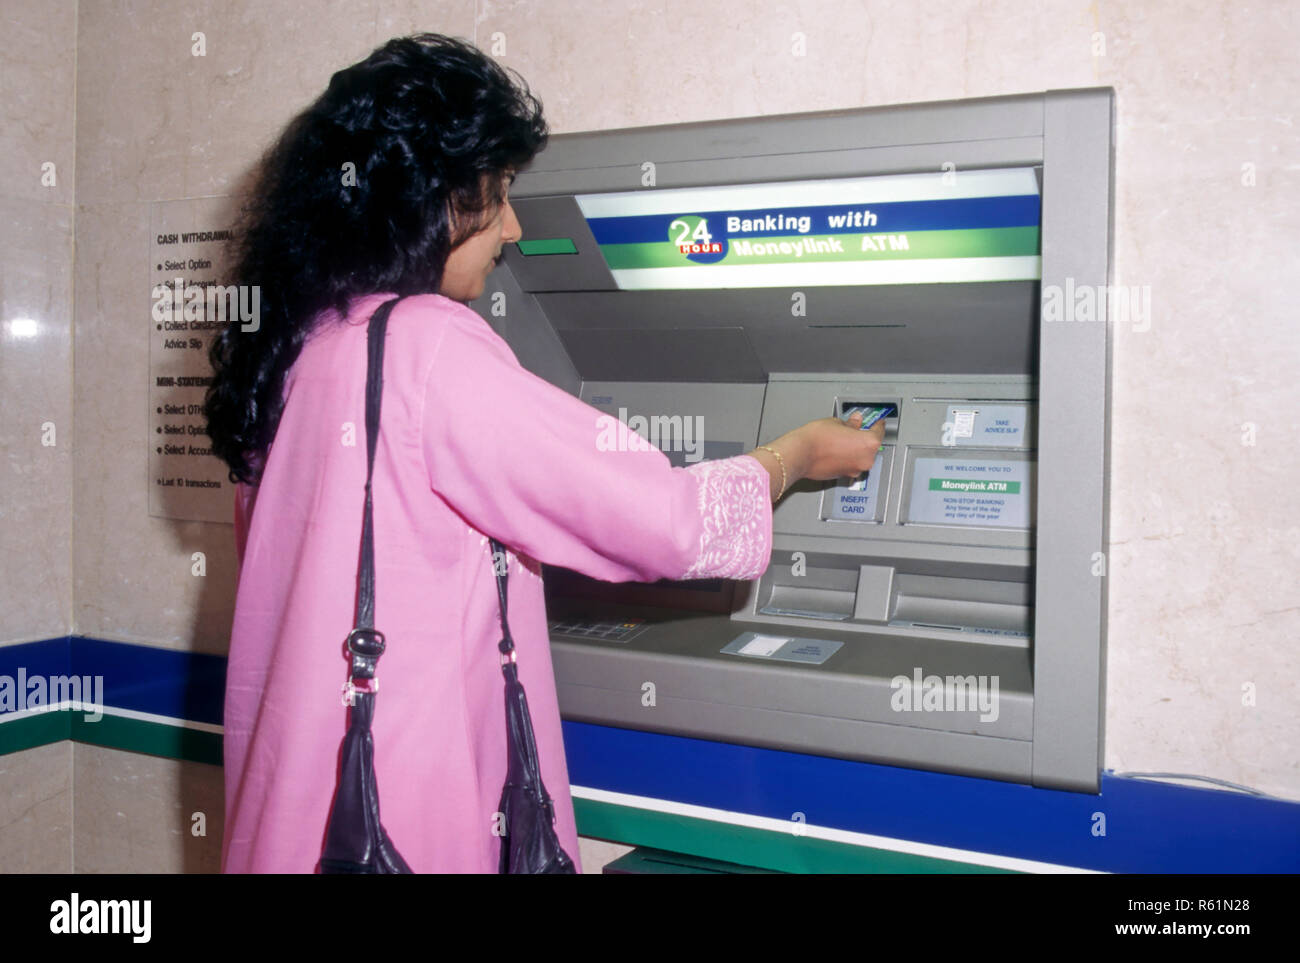 woman operating Any Time Money System ATM, automated bank system - Stock Image